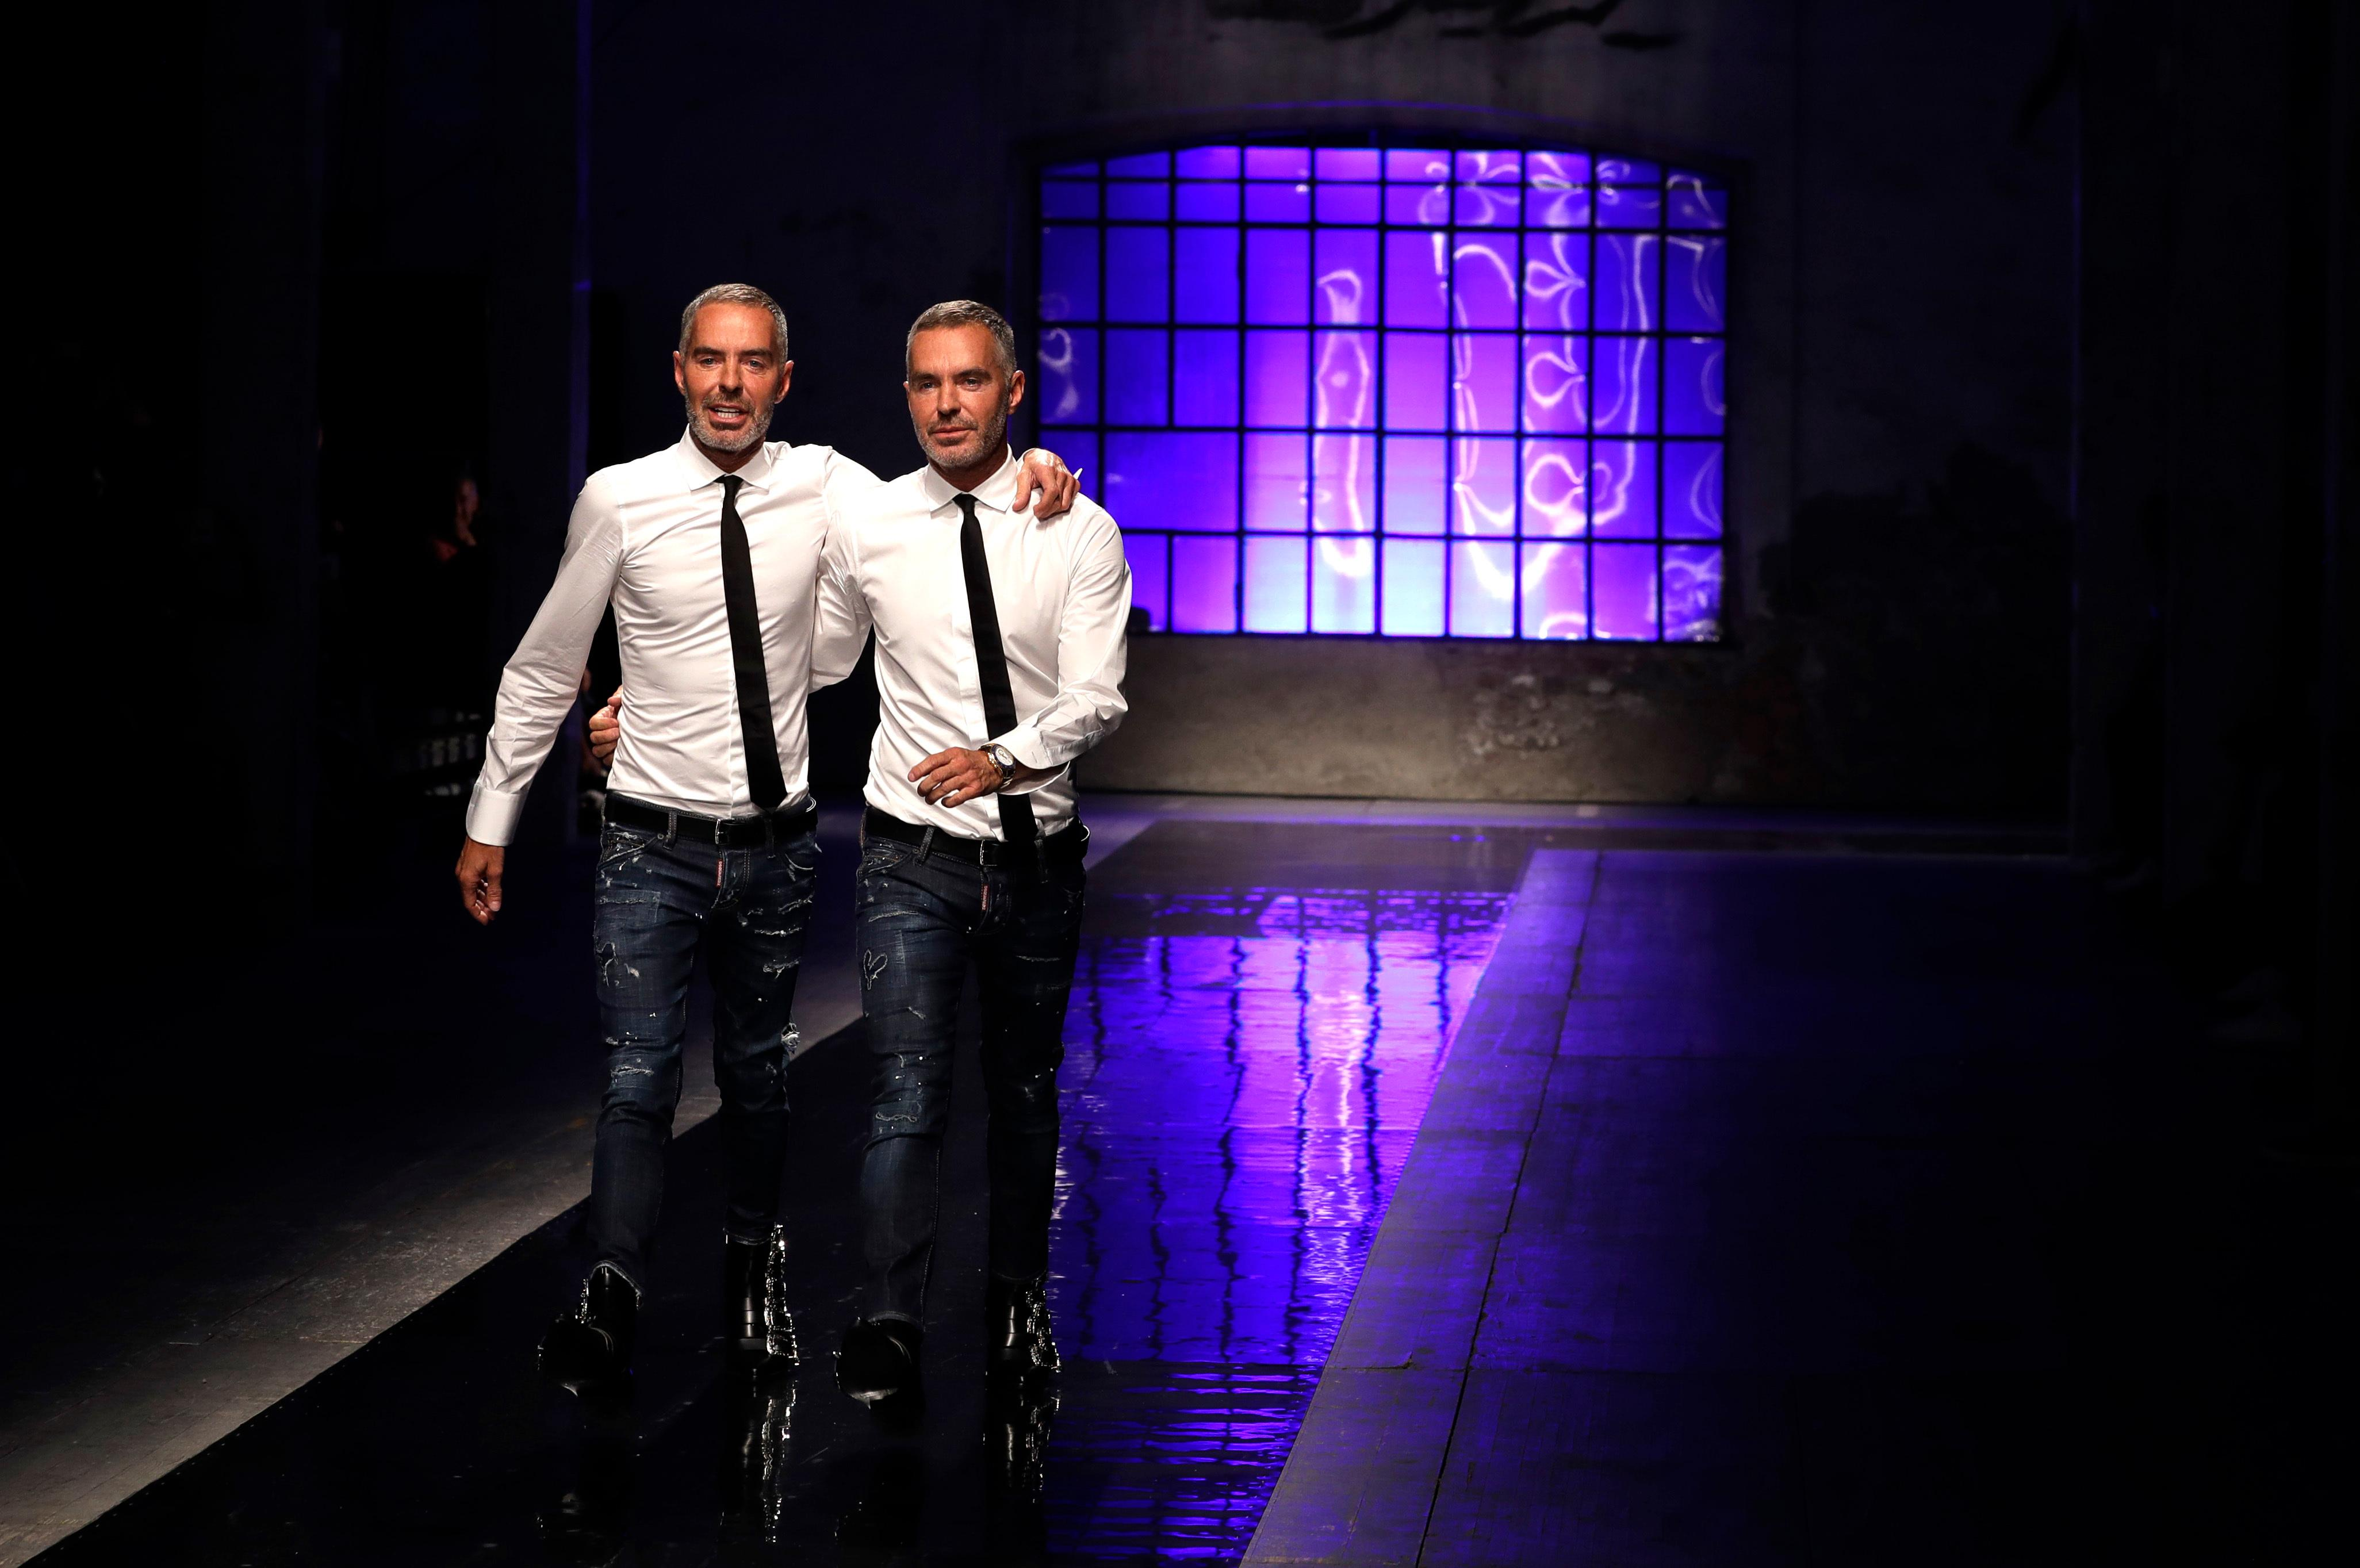 Canadian fashion designers Dean Caten, right, and Dan Caten acknowledge the applause of the audience after presenting their DSquared2 men's Spring-Summer 2018 collection, presented in Milan, Italy, Sunday, June 18, 2017. (AP Photo/Antonio Calanni)